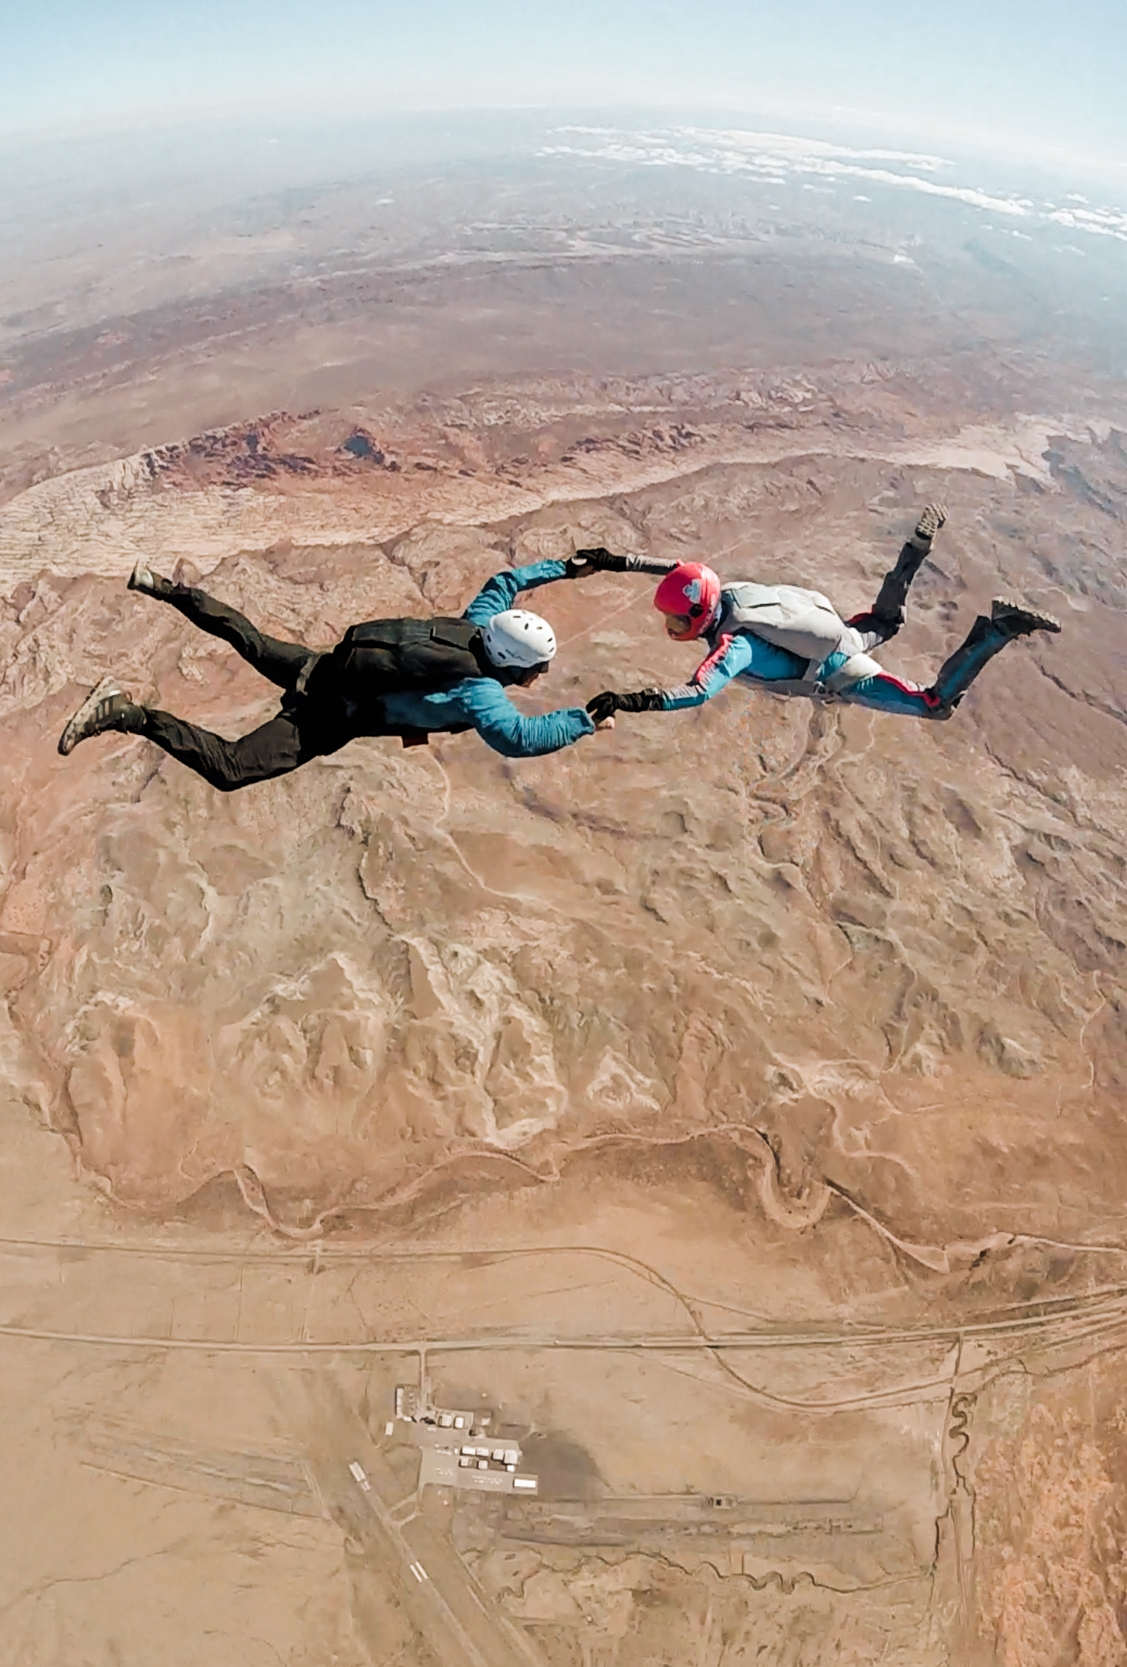 skydiving in moab, utah | utah and california adventure elopement photographers | the hearnes adventure photography | www.thehearnes.com